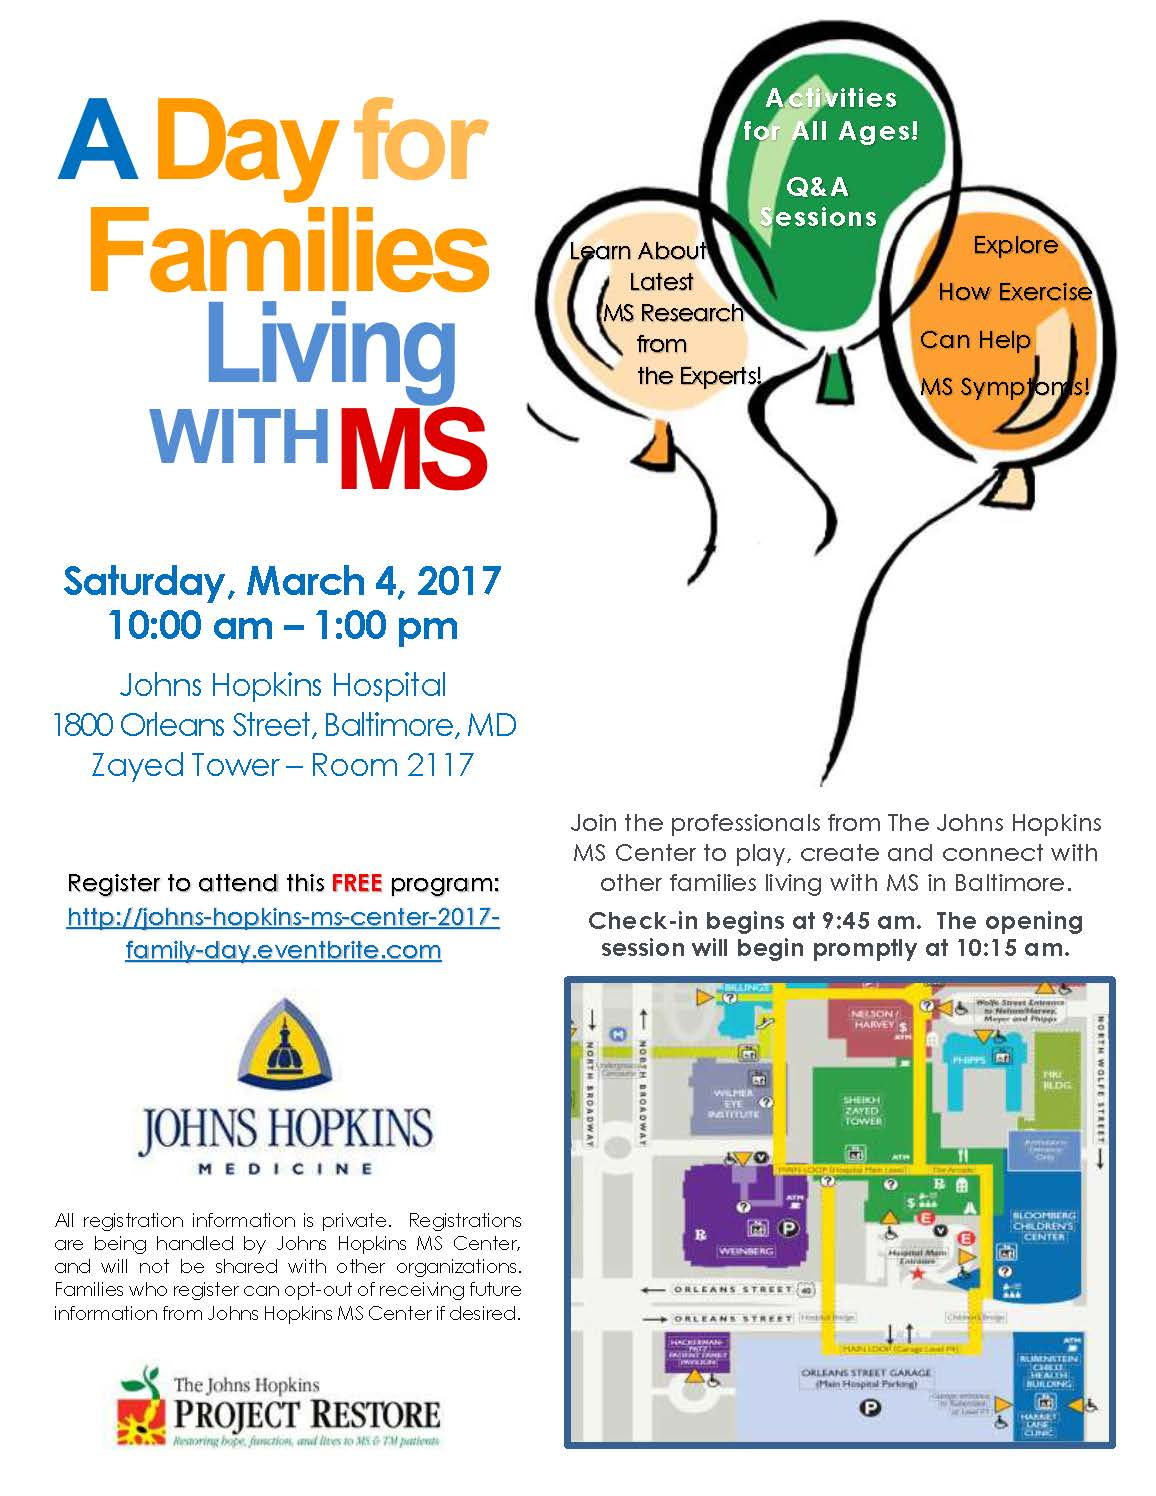 A Day for Families Living with MS